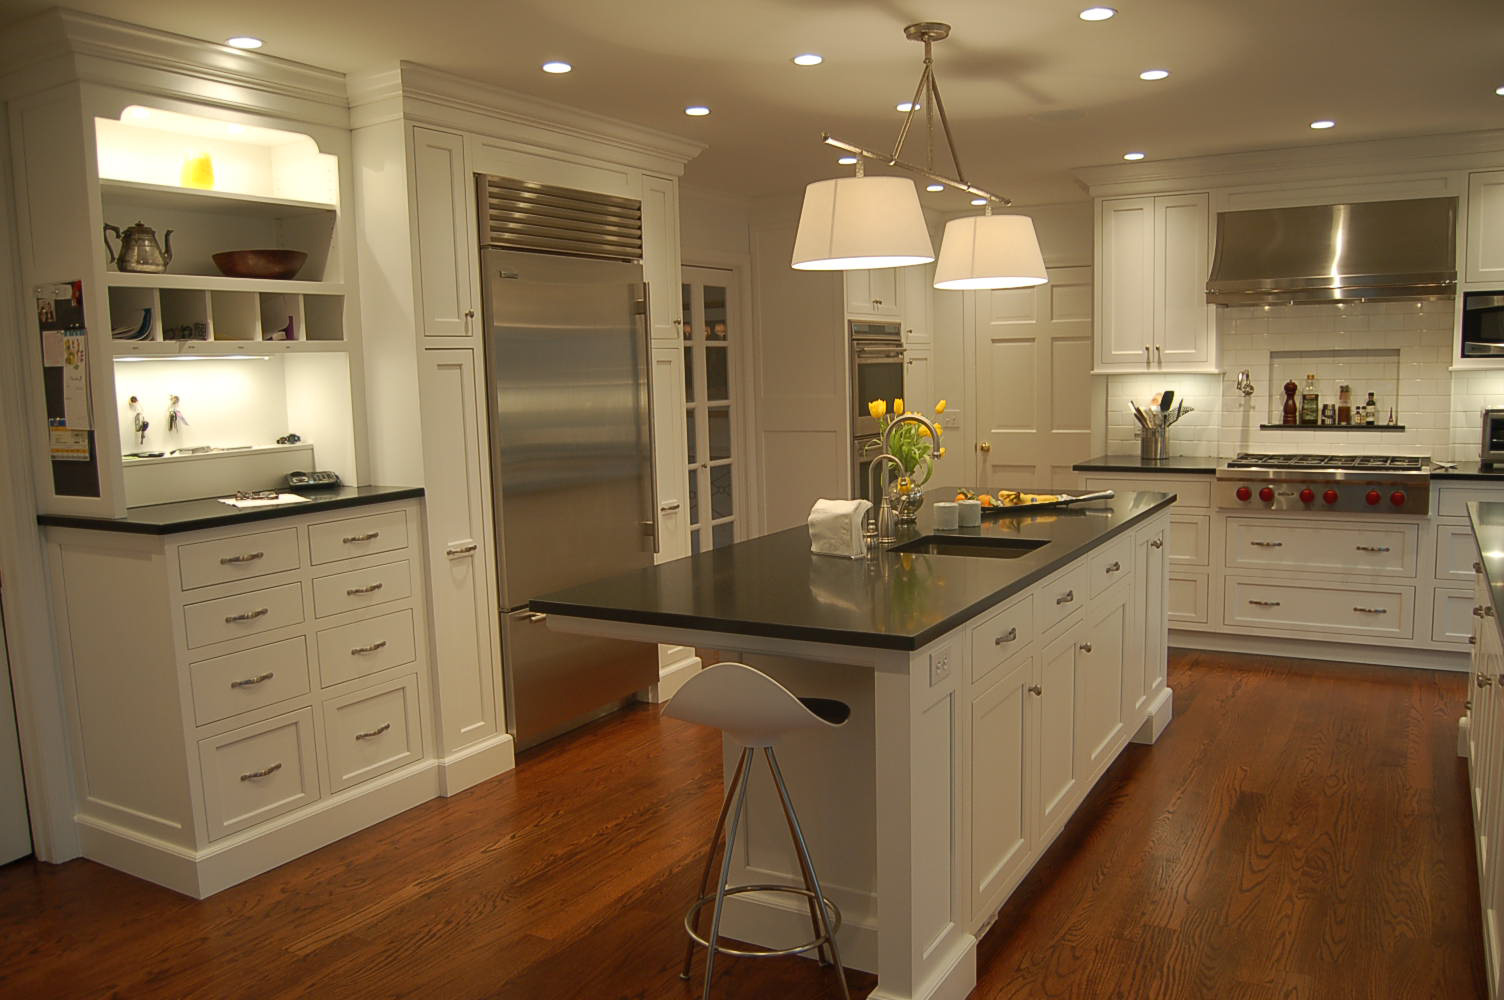 Stunning White Shaker Cabinets Kitchen Designs with Wood Floors 1504 x 1000 · 206 kB · jpeg